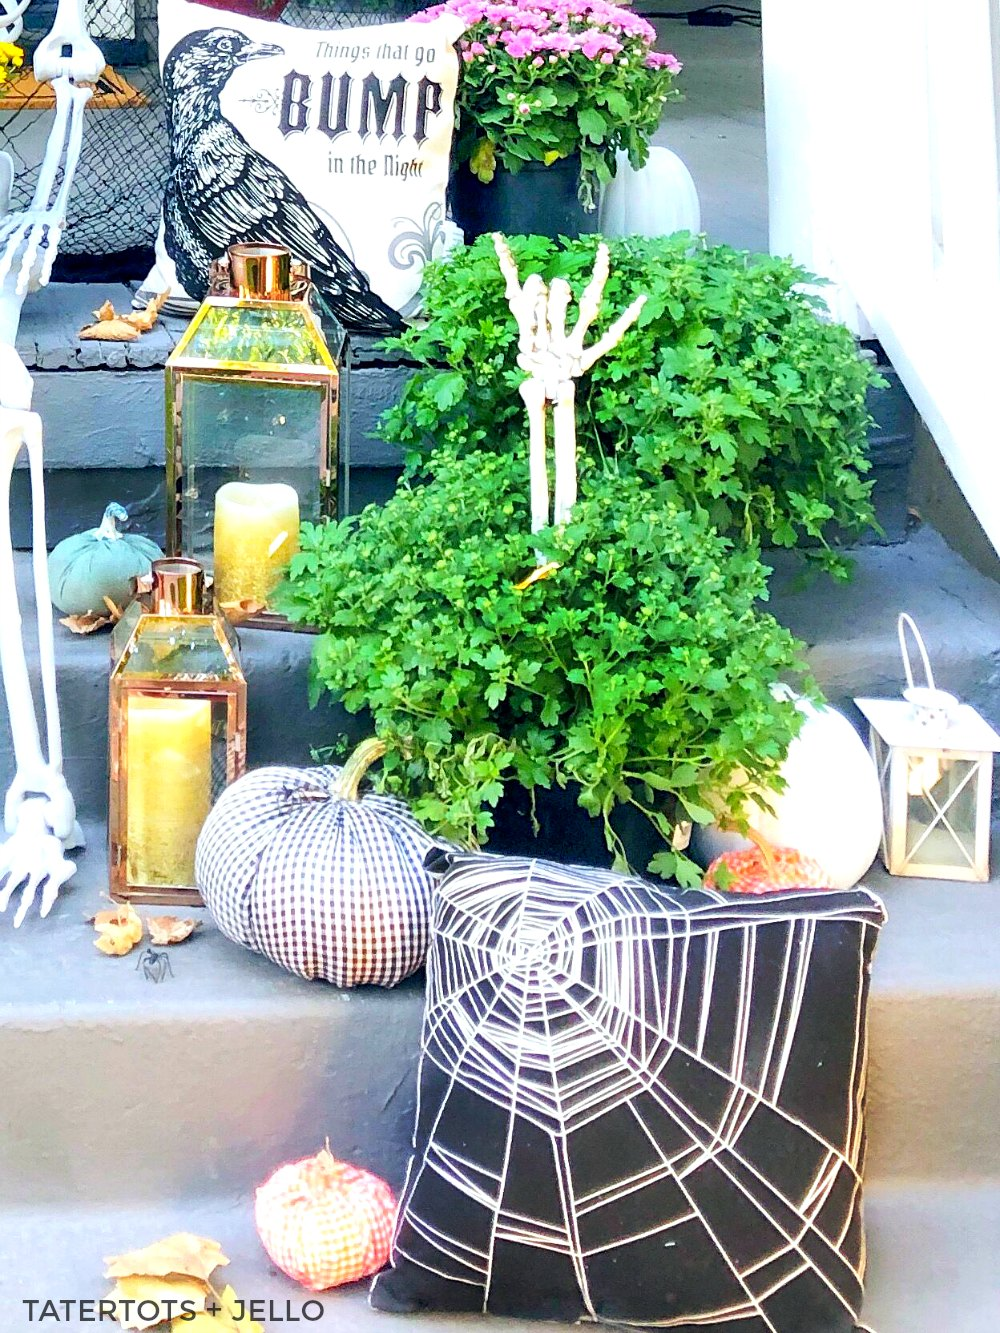 7 Easy Ways to Create a Spooky Skeleton Halloween Porch! Add fresh flowers, lanterns, signs, banners and wreaths to create the perfect spooky Halloween porch!